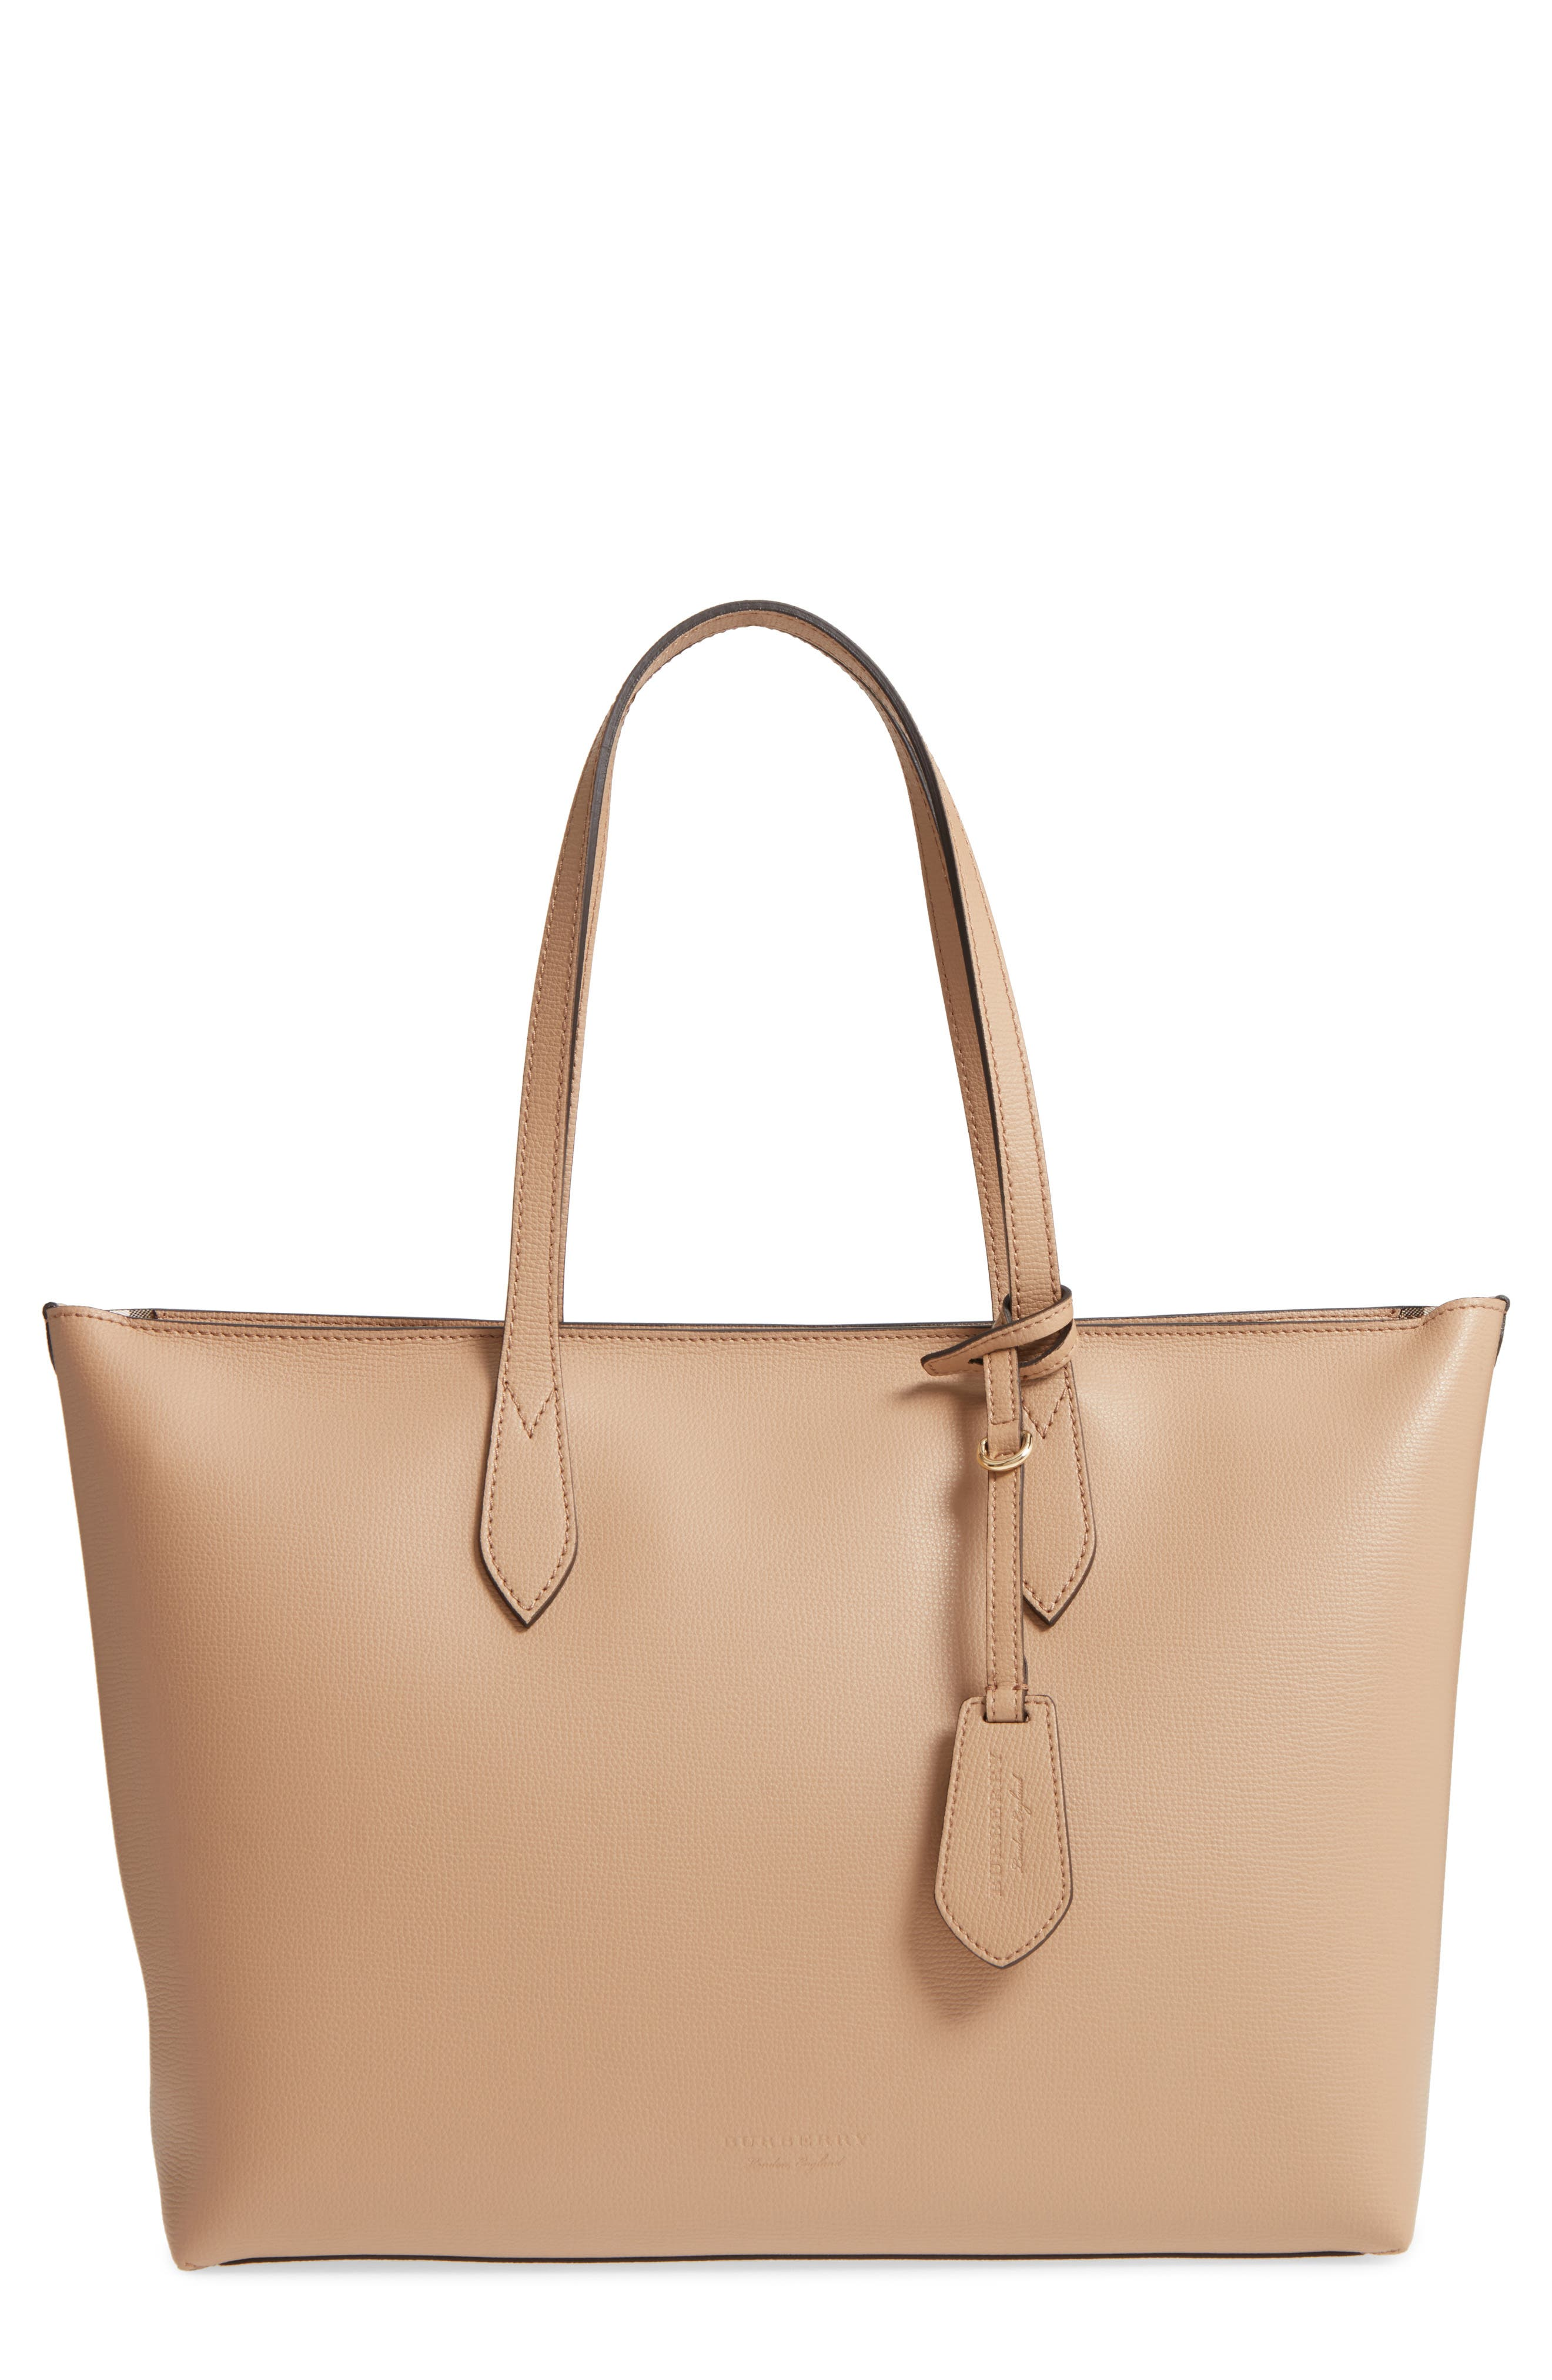 Alternate Image 1 Selected - Burberry Calfskin Leather Tote